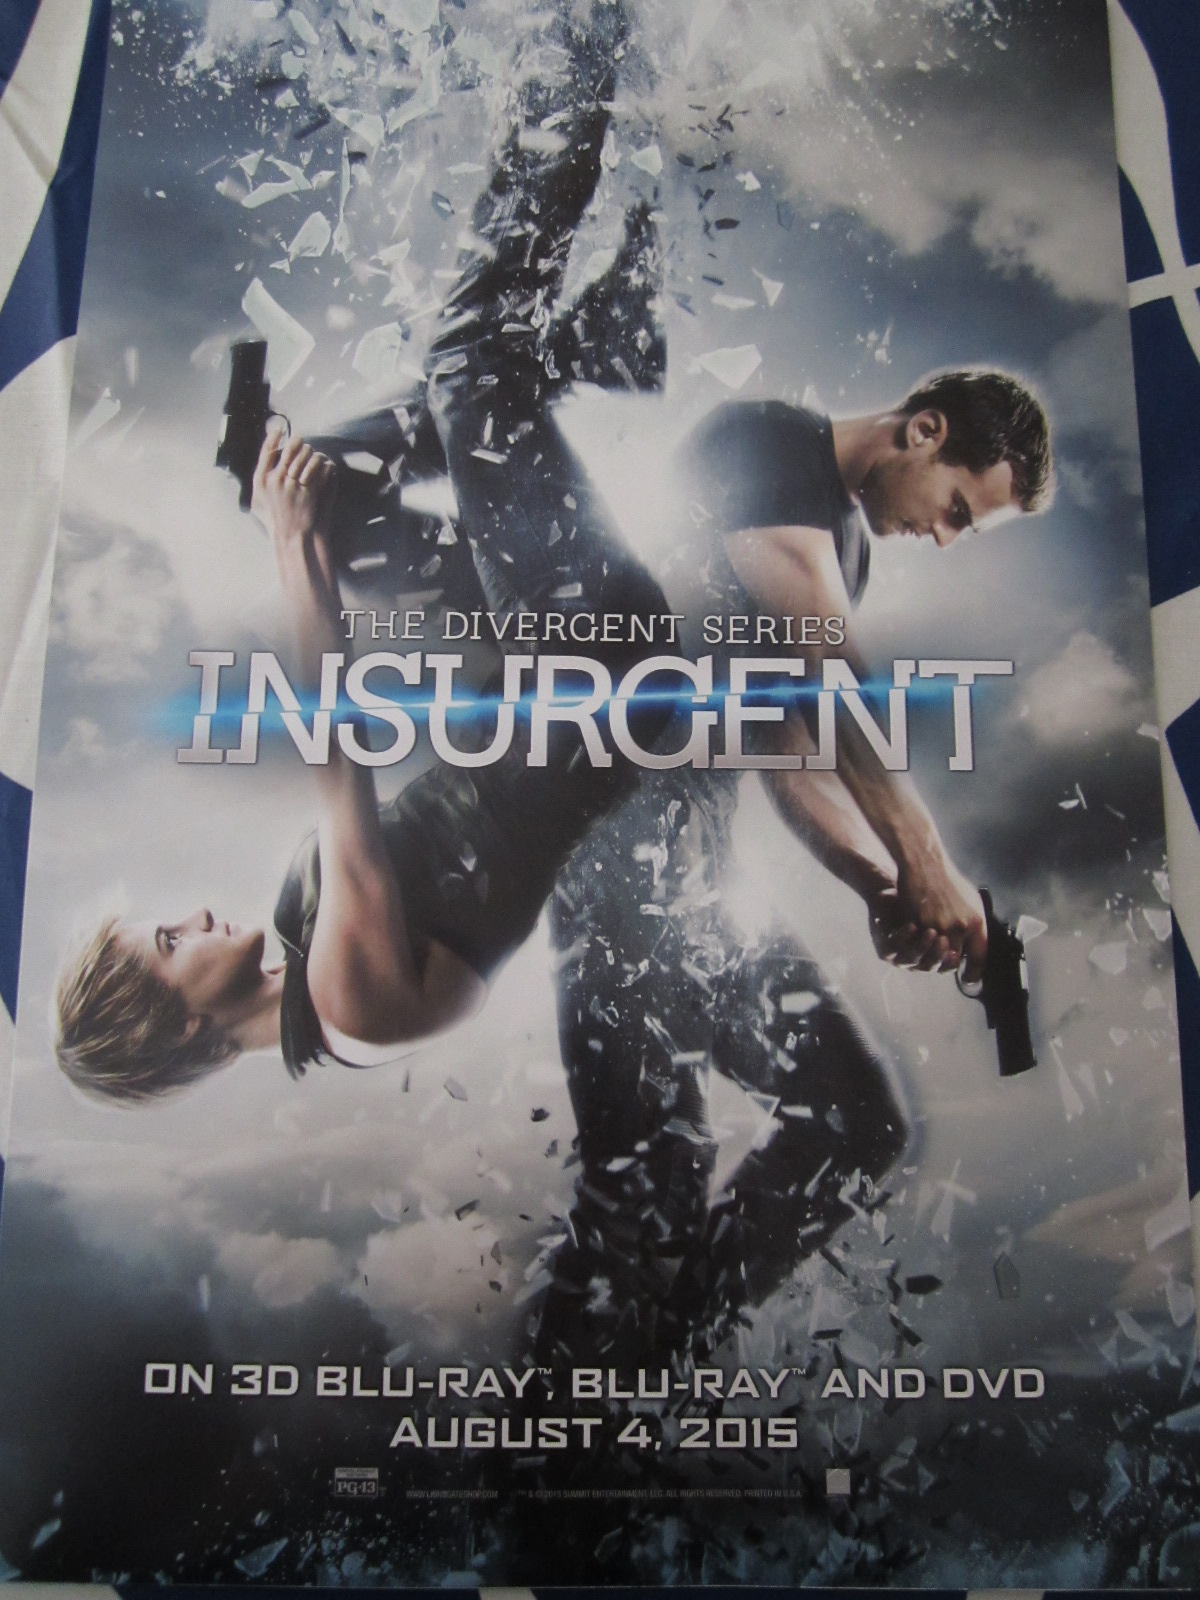 Insurgent Divergent 2015 Mini Movie Poster Theo James Shailene Woodley